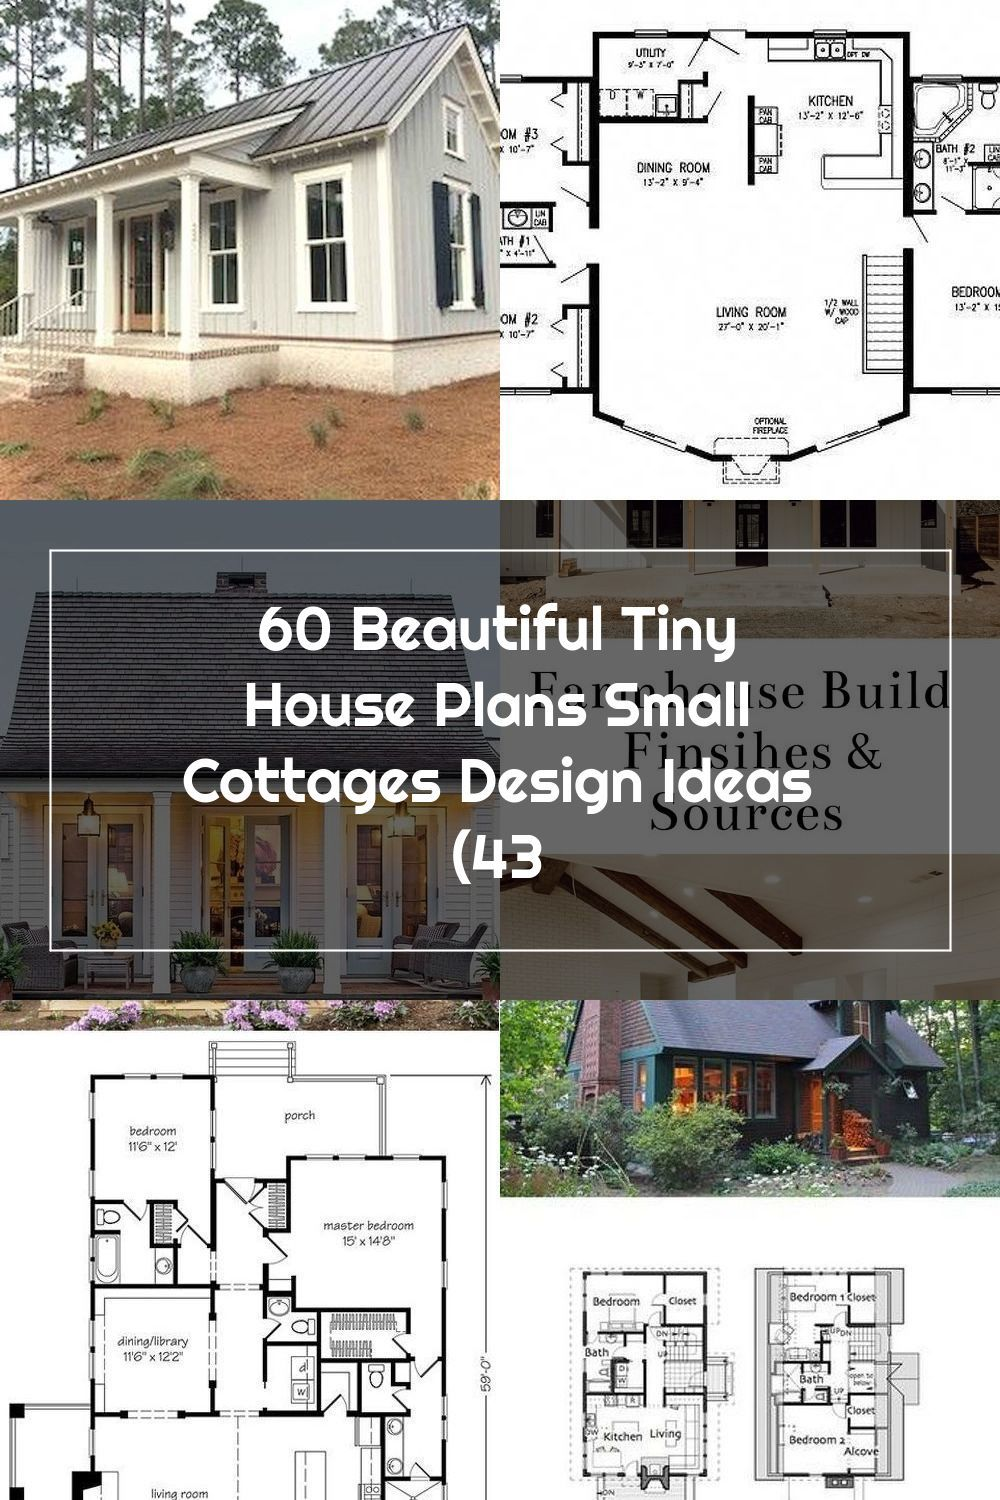 60 Beautiful Tiny House Plans Small Cottages Design Ideas 43 In 2020 Small House Plans Small Cottage Designs Tiny House Plans Small Cottages